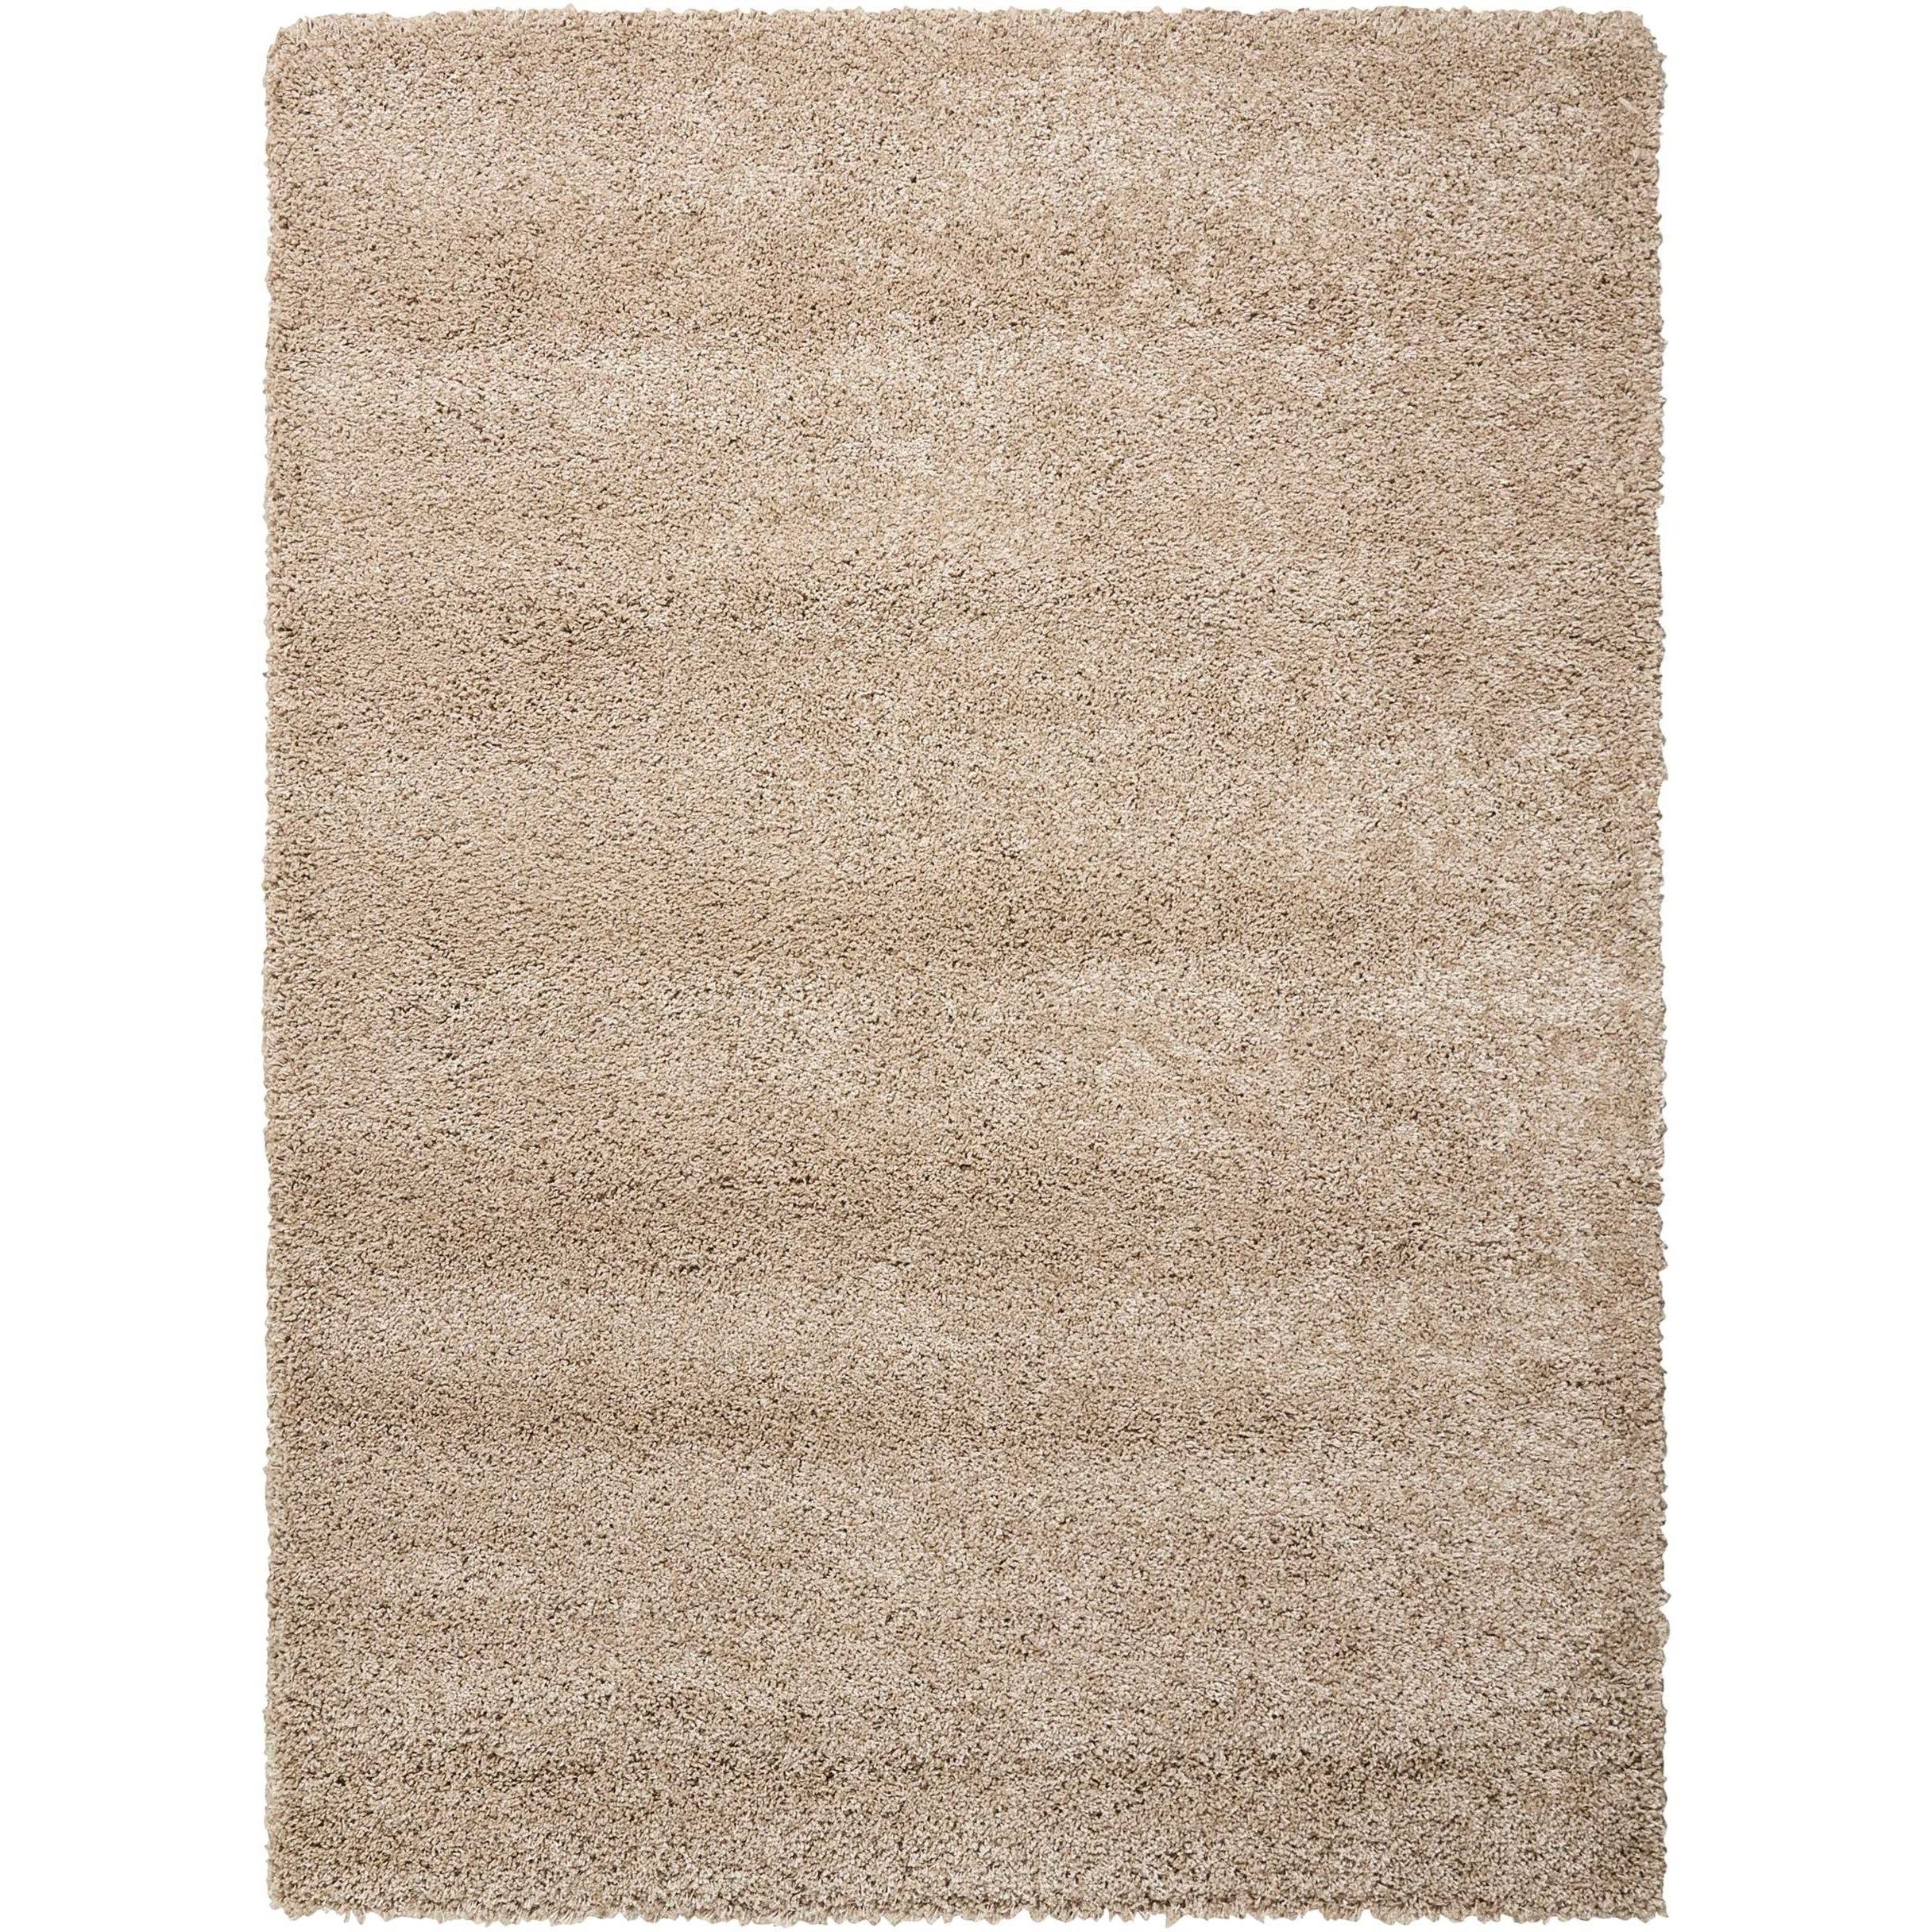 """Amore 7'10"""" x 10'10"""" Oyster Rectangle Rug by Nourison at Home Collections Furniture"""